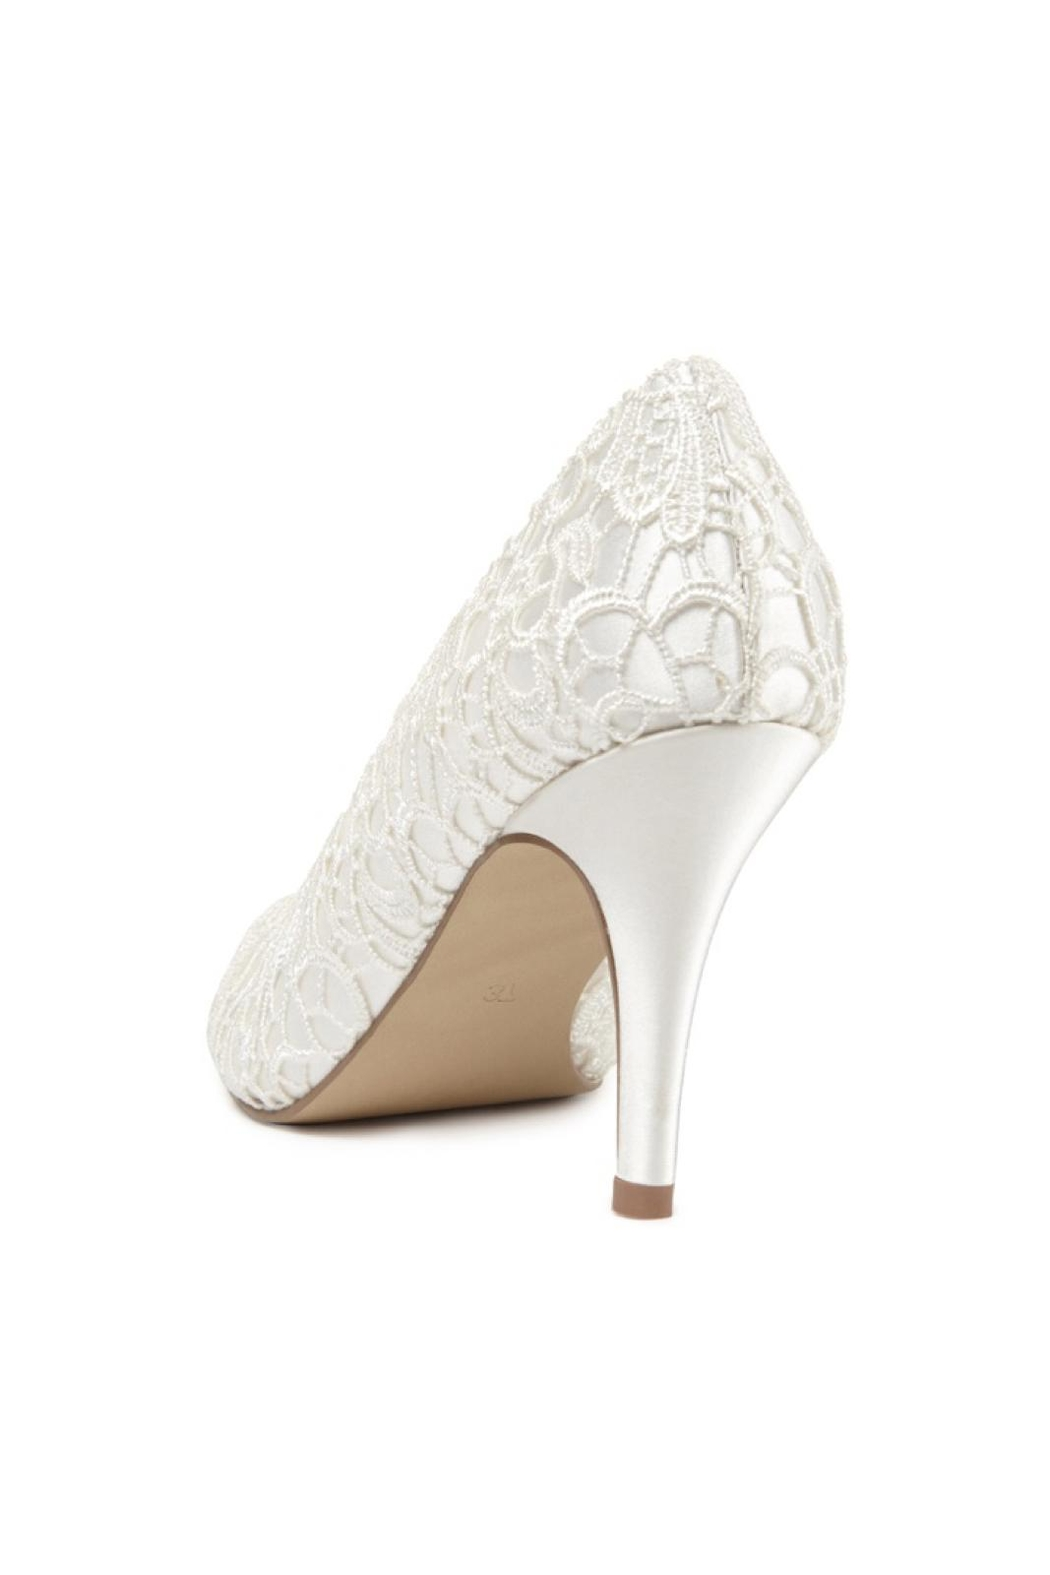 pink paradox London Cosmos Ivory Lace Heels - Side Cropped Image